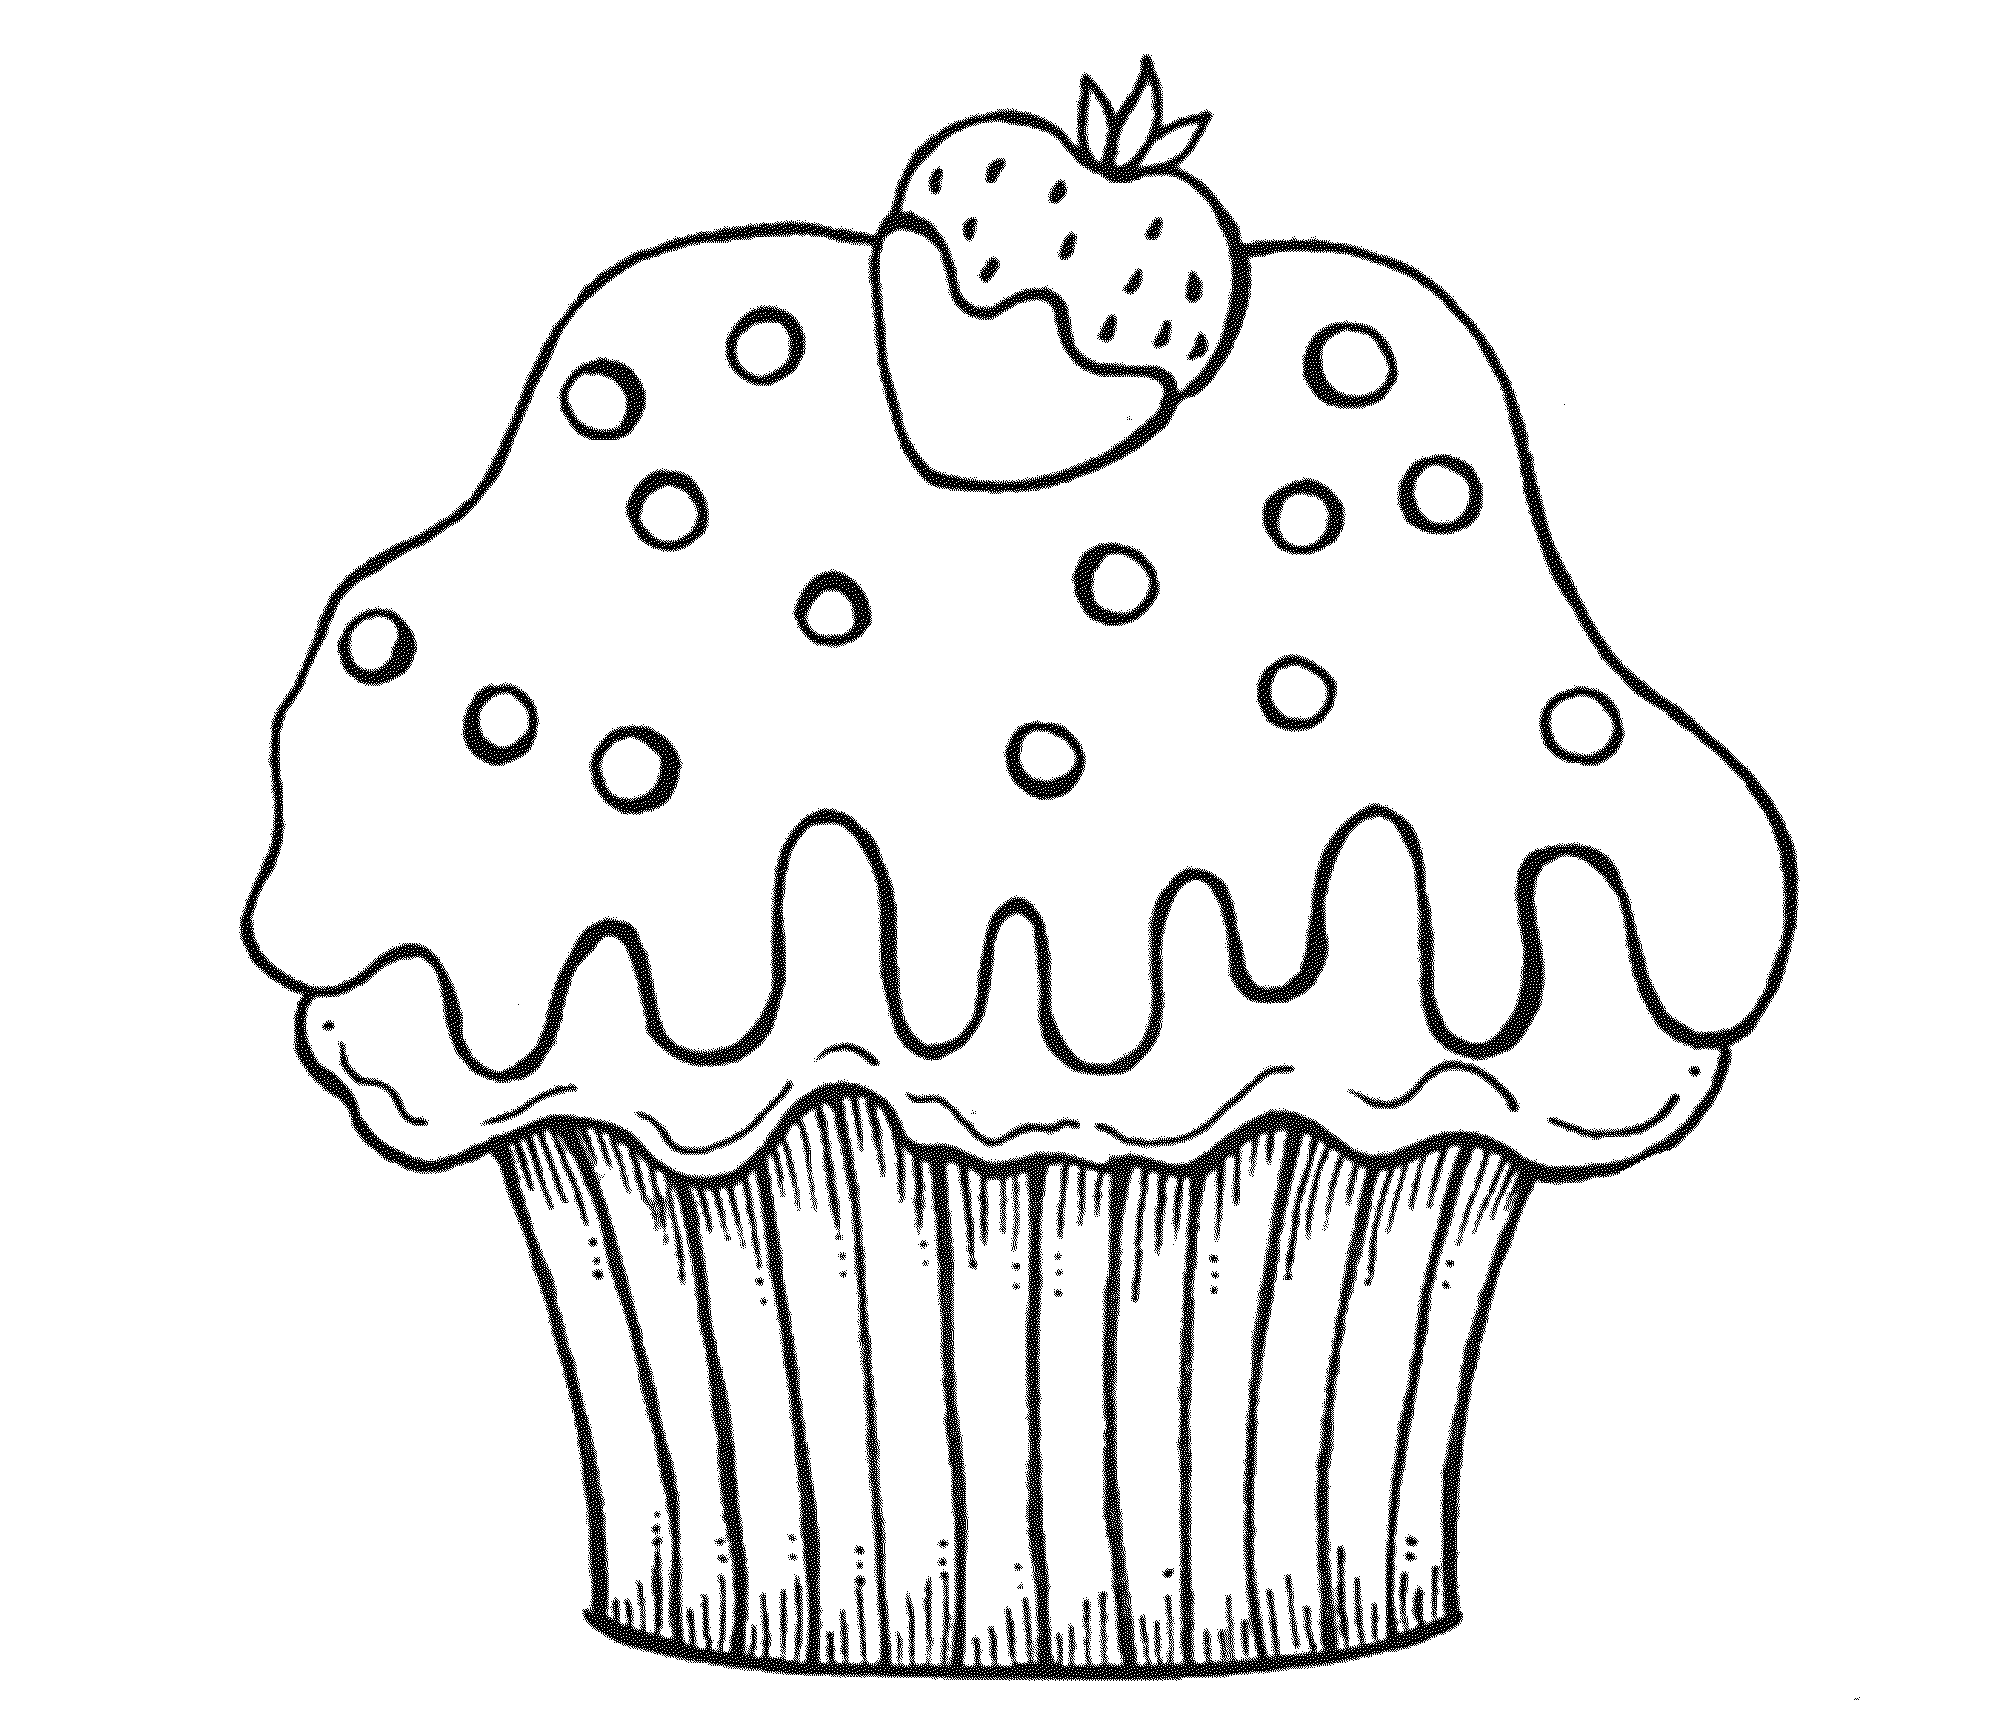 2000x1720 Cupcake Coloring Pages